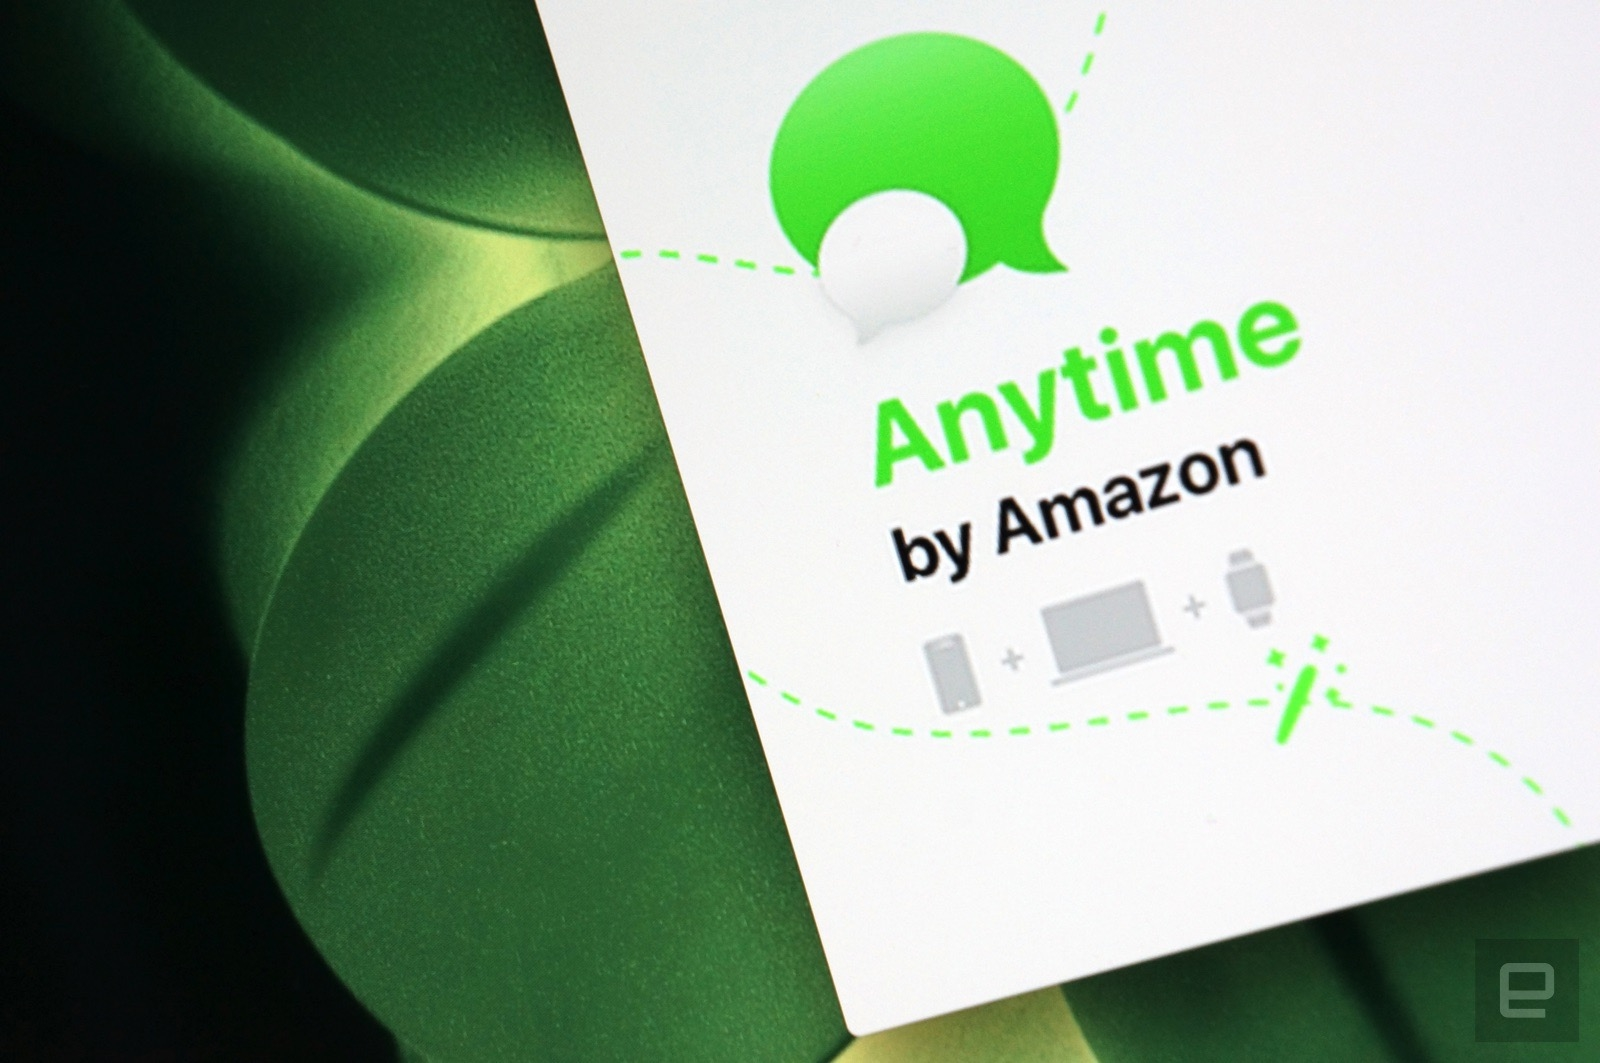 Amazon is working on a new messaging app called Anytime